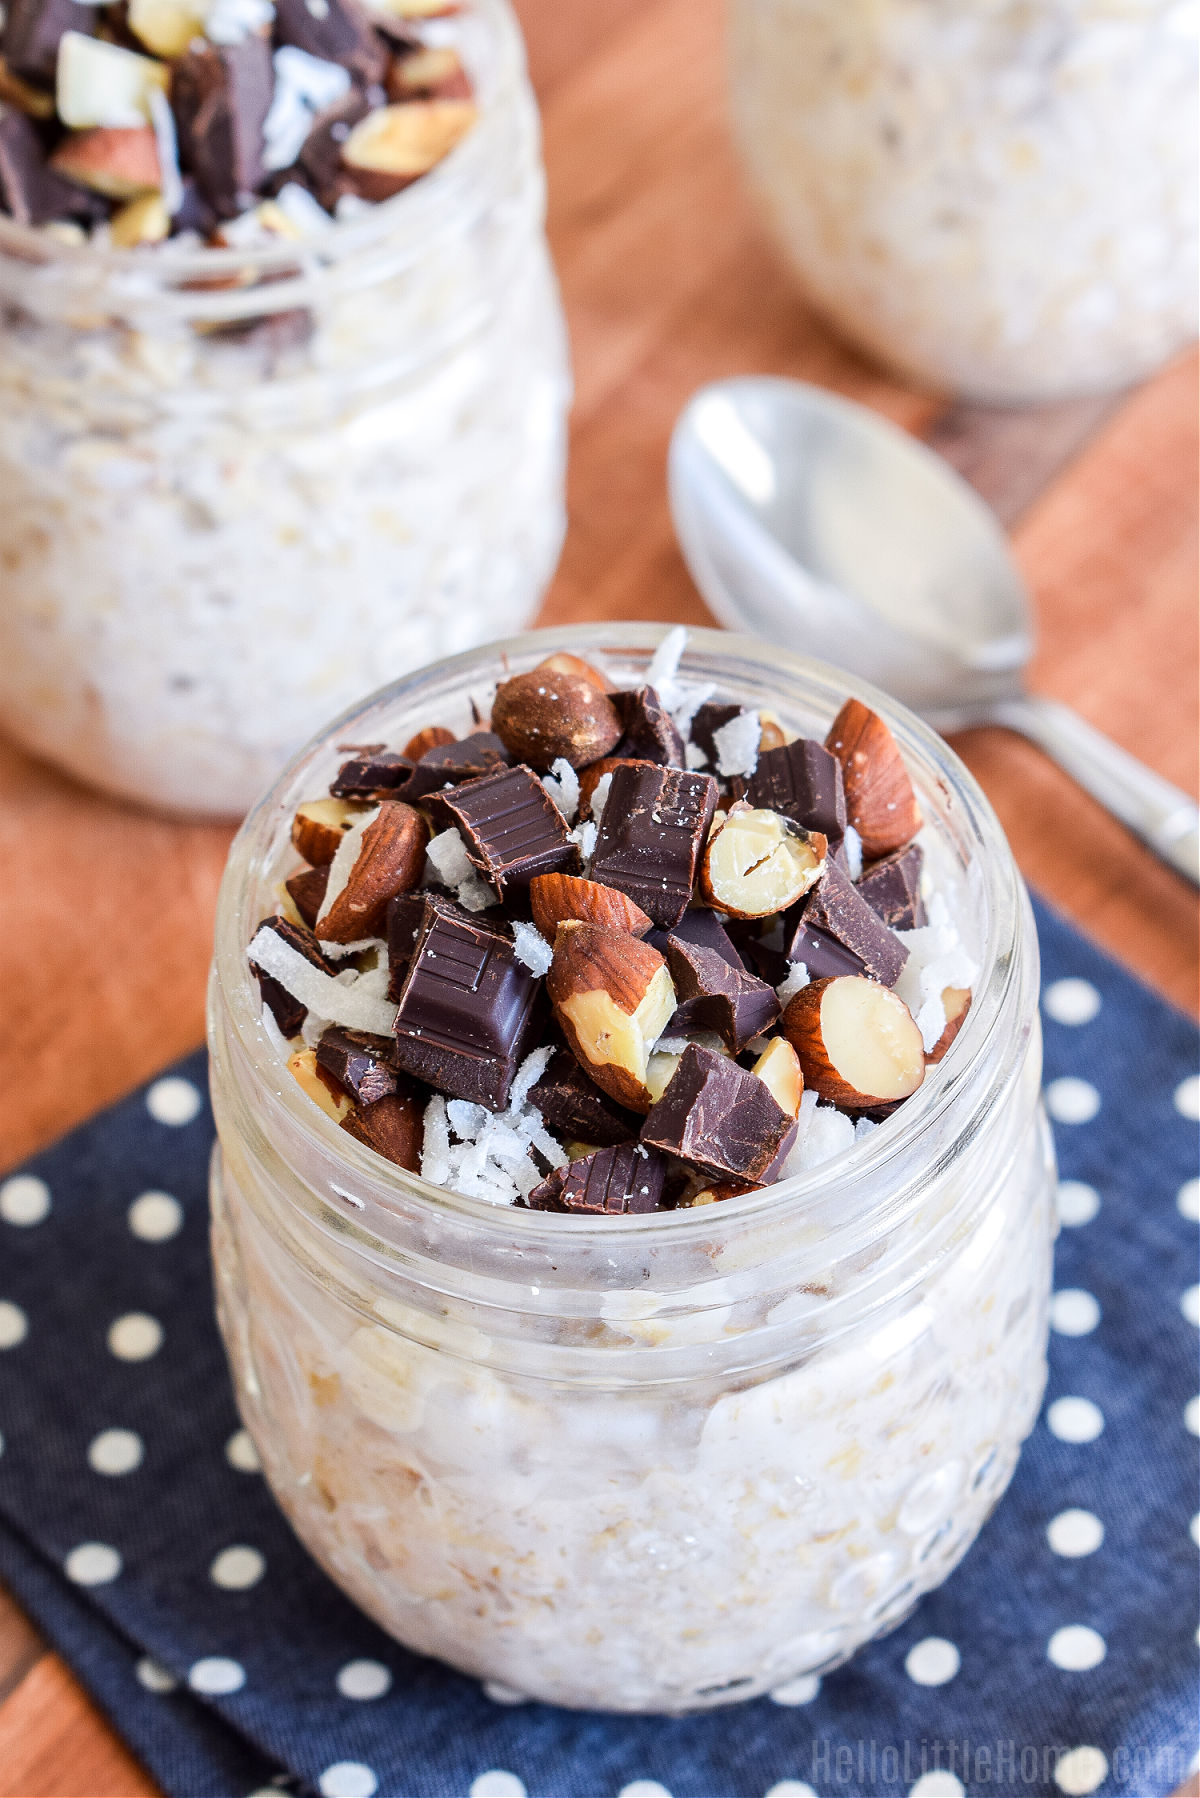 Jars of Chocolate Coconut Overnight Oats, a napkin, and spoon on a wood board.